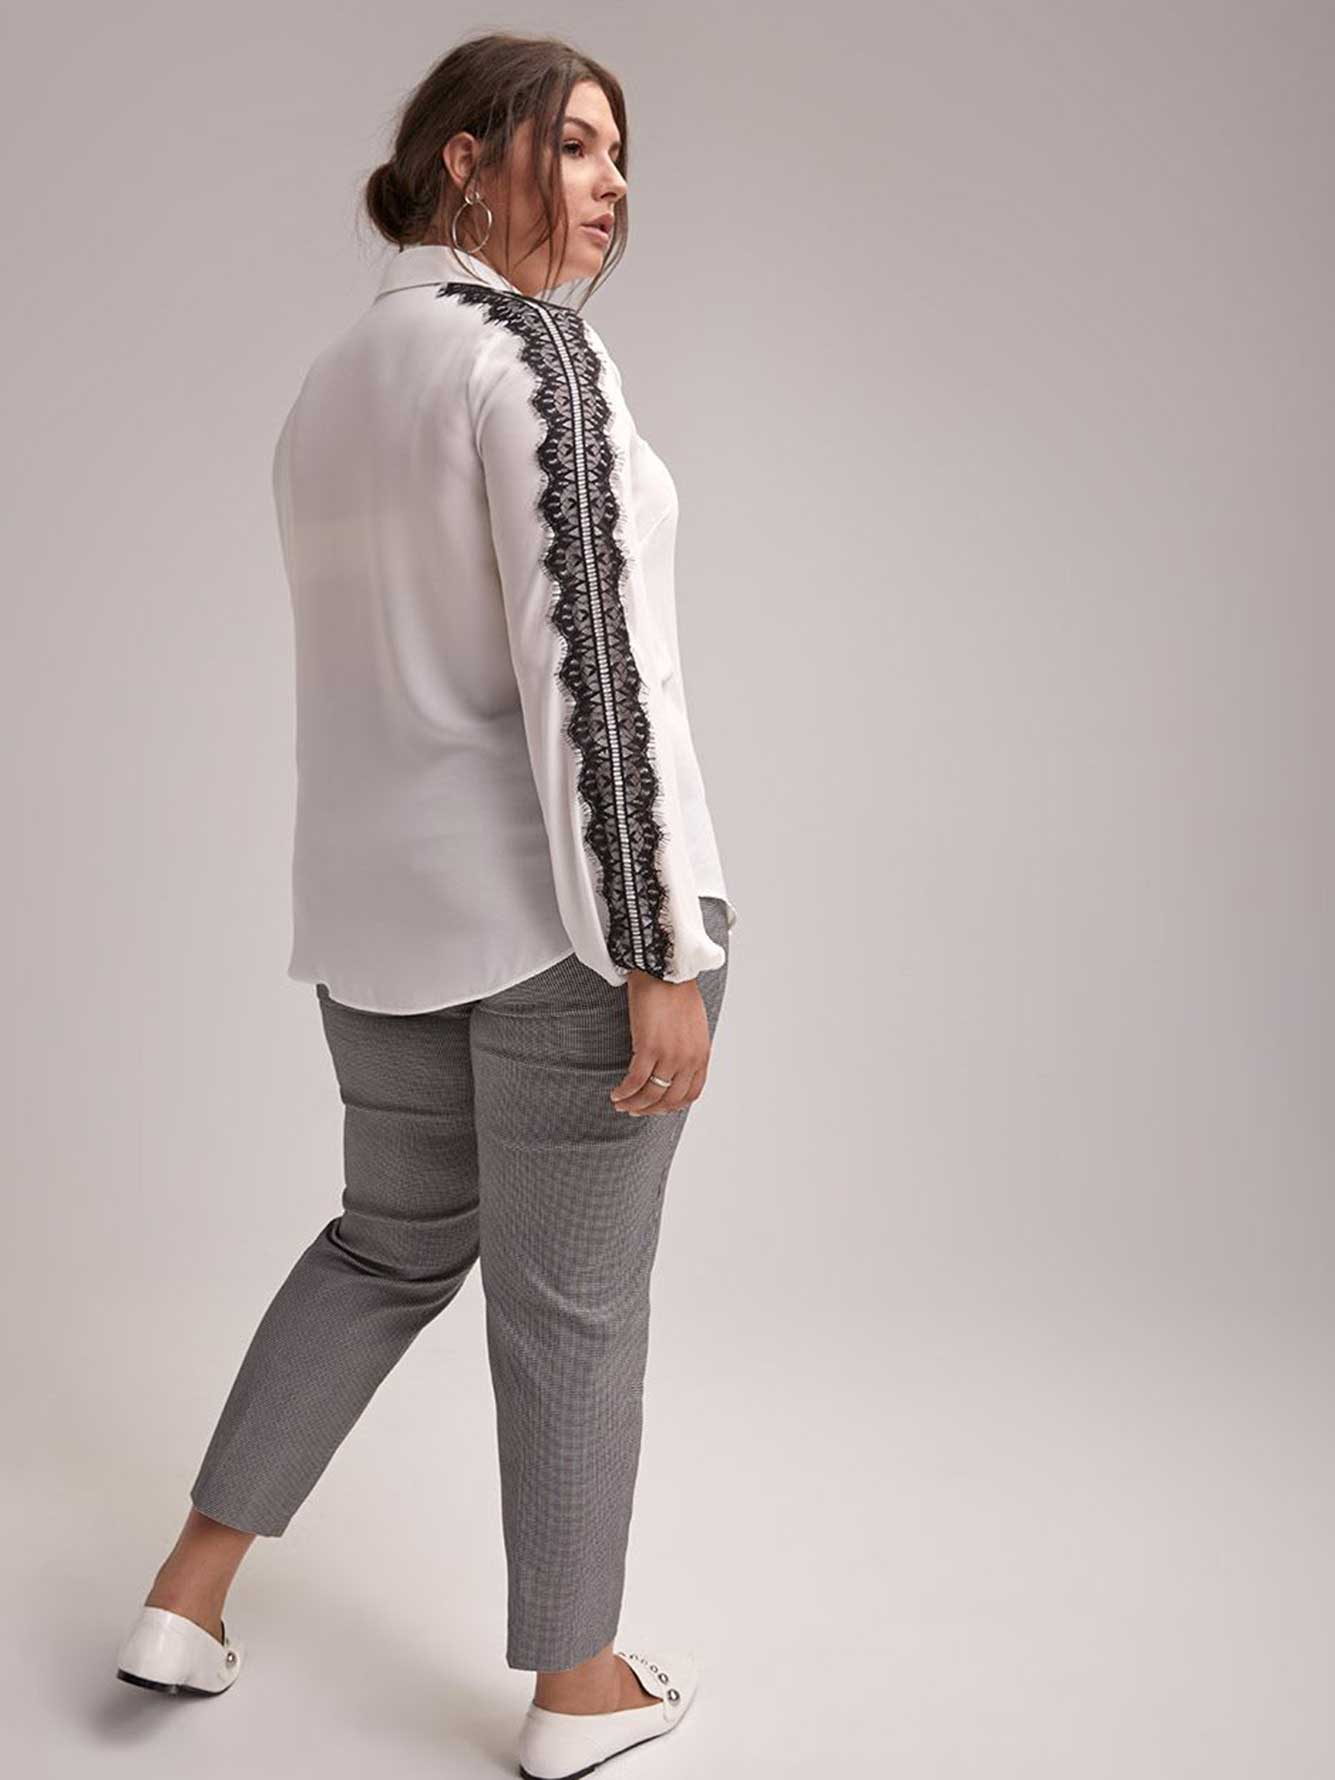 a9bca1dc Long Sleeve Button-Down Blouse with Lace - In Every Story | Penningtons